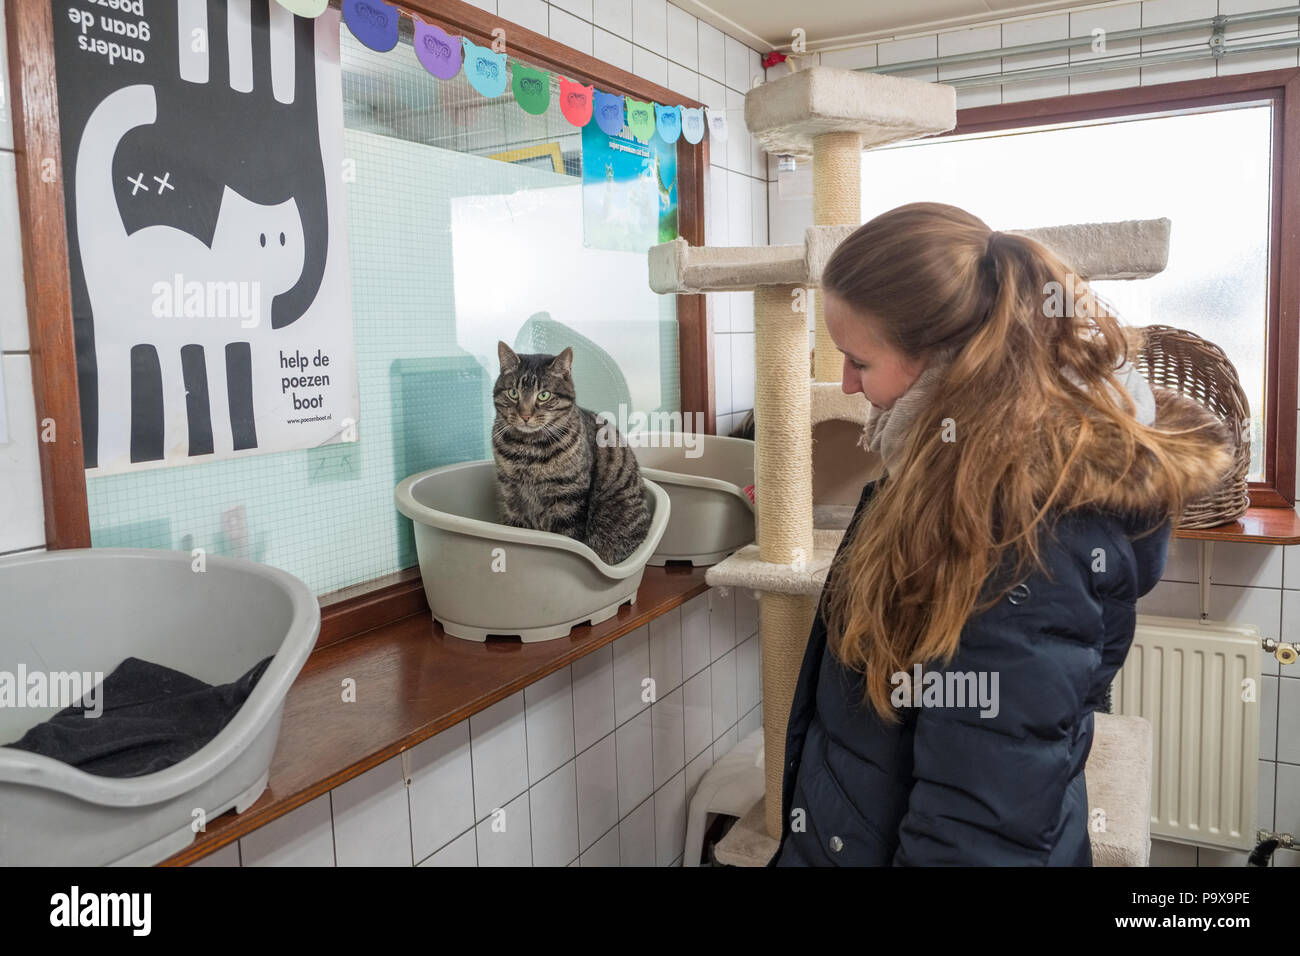 Cat in De Poezenboot, The Catboat, a barge which serves as a cat shelter in Amsterdam, Netherlands, Holland, Europe - Stock Image